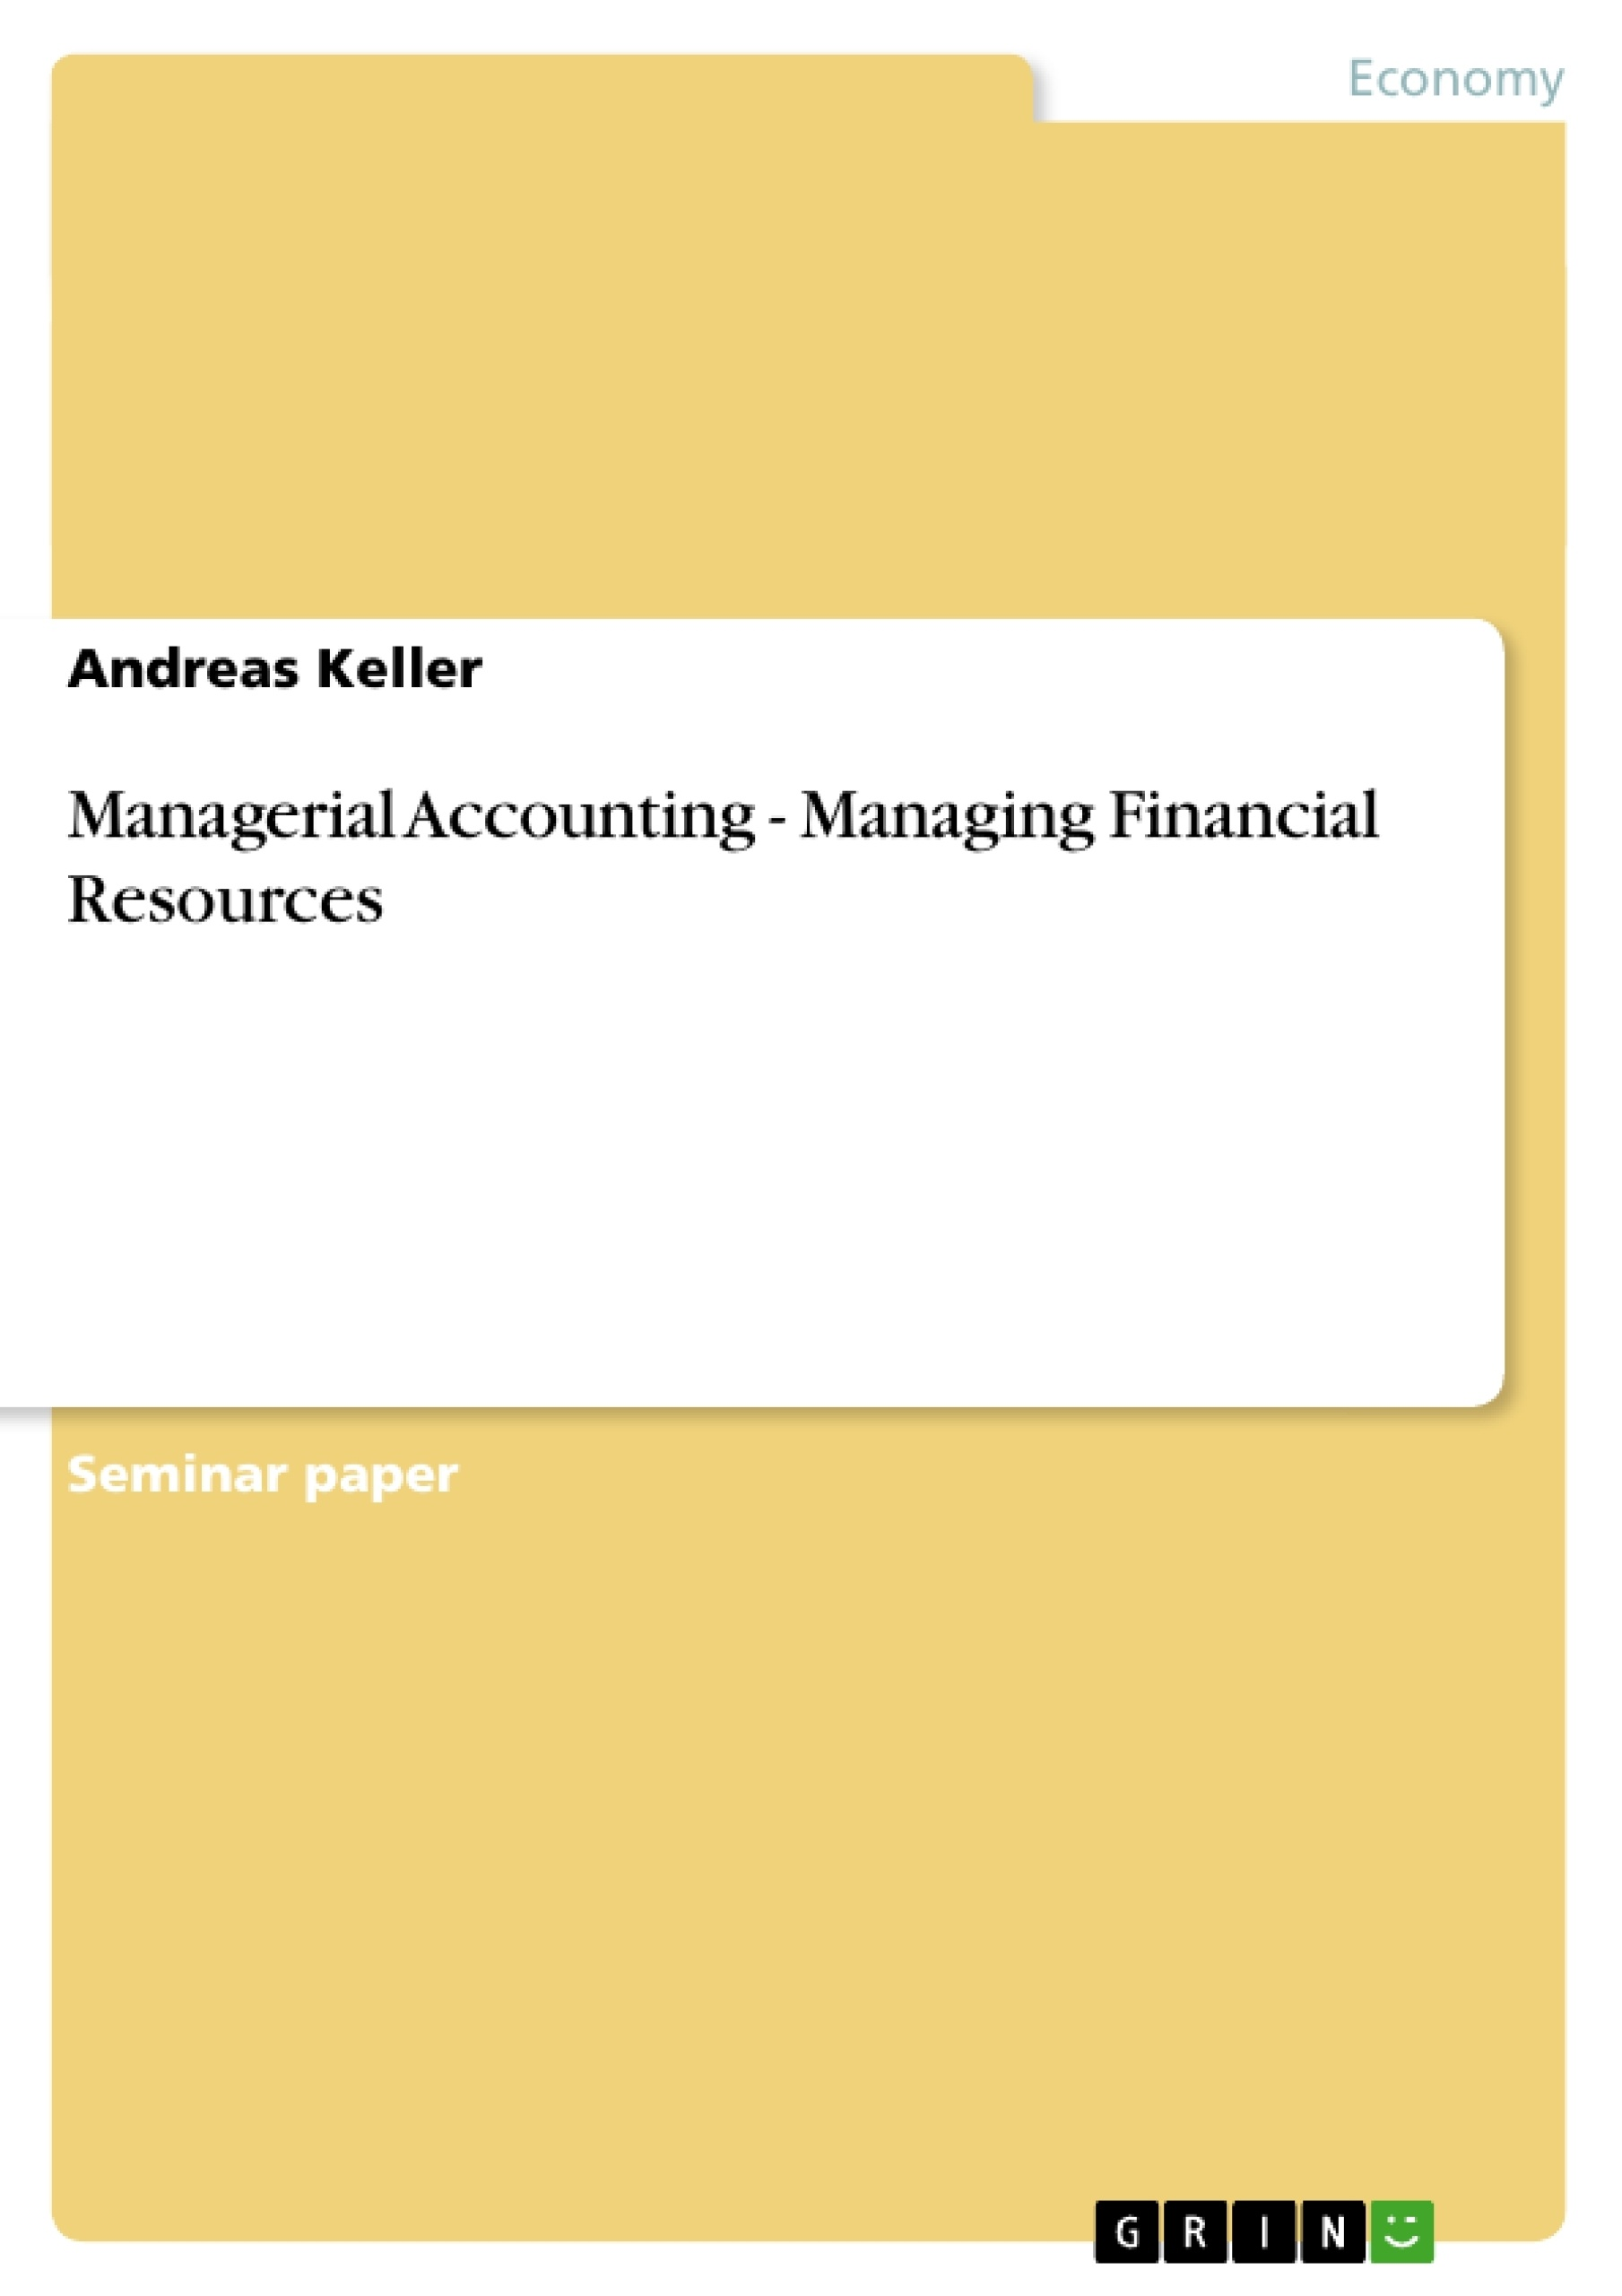 Title: Managerial Accounting - Managing Financial Resources